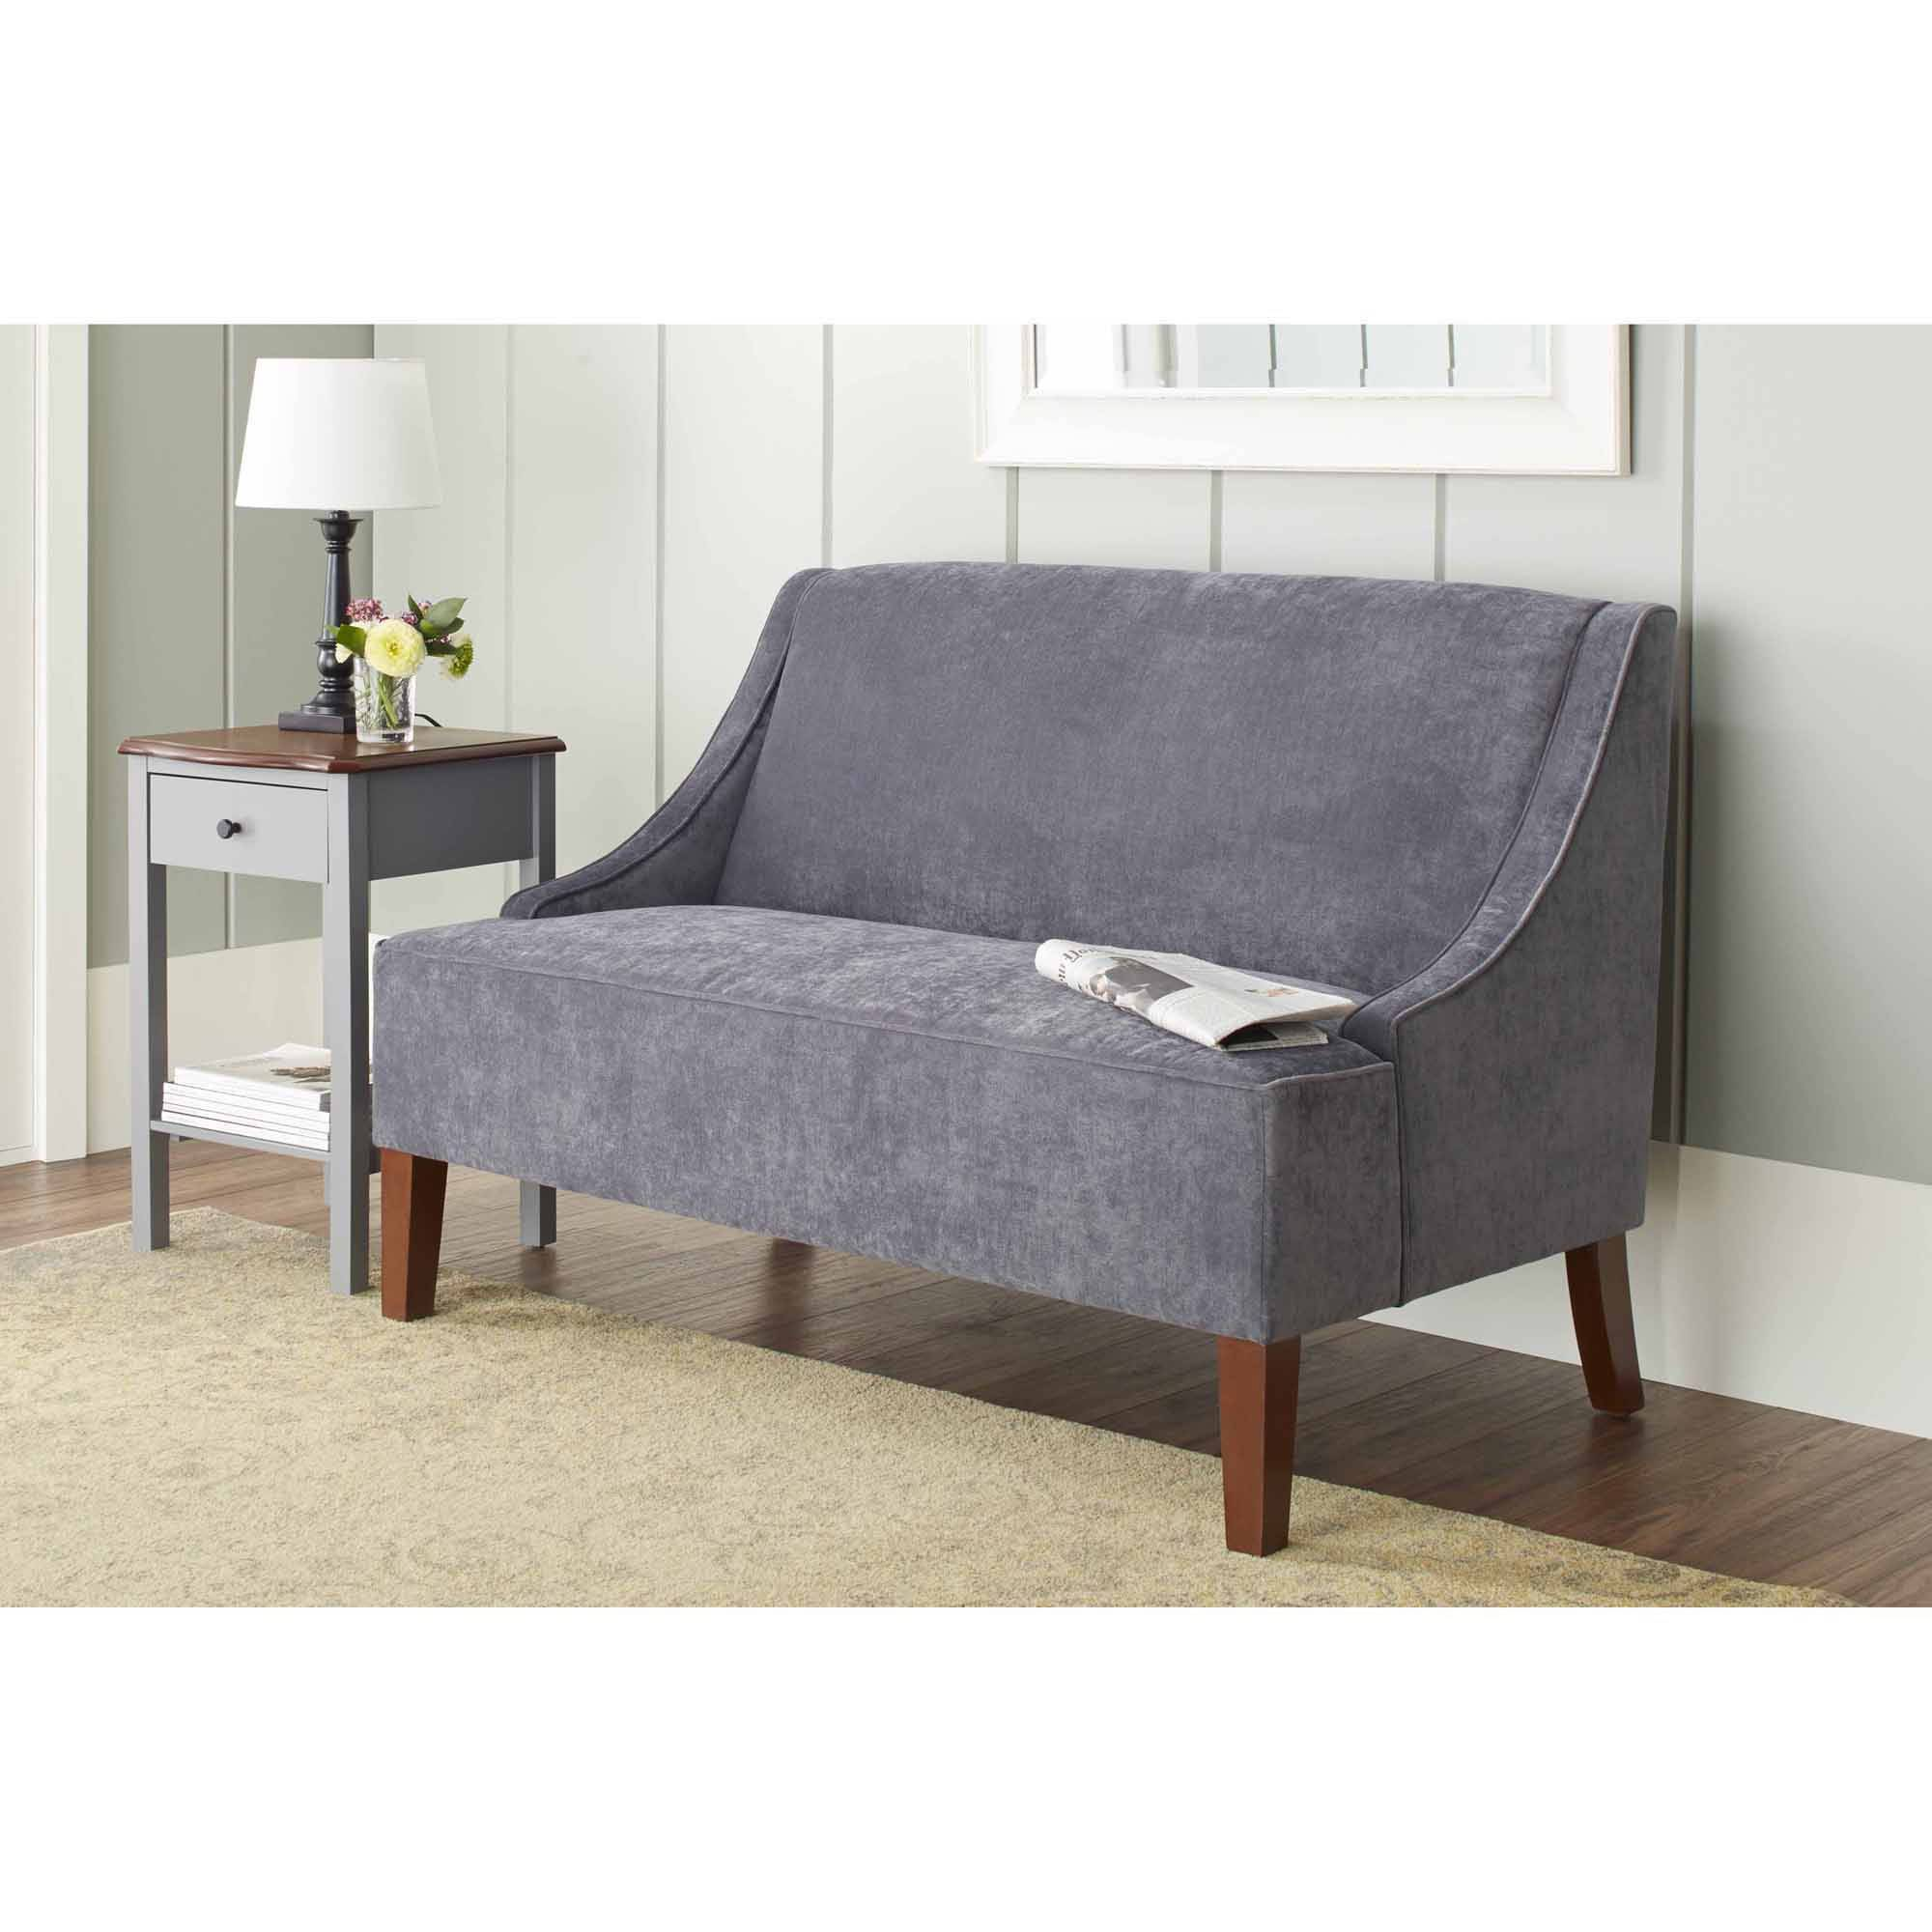 Chelsea Home Furniture Ame Sectional Sofa Walmart